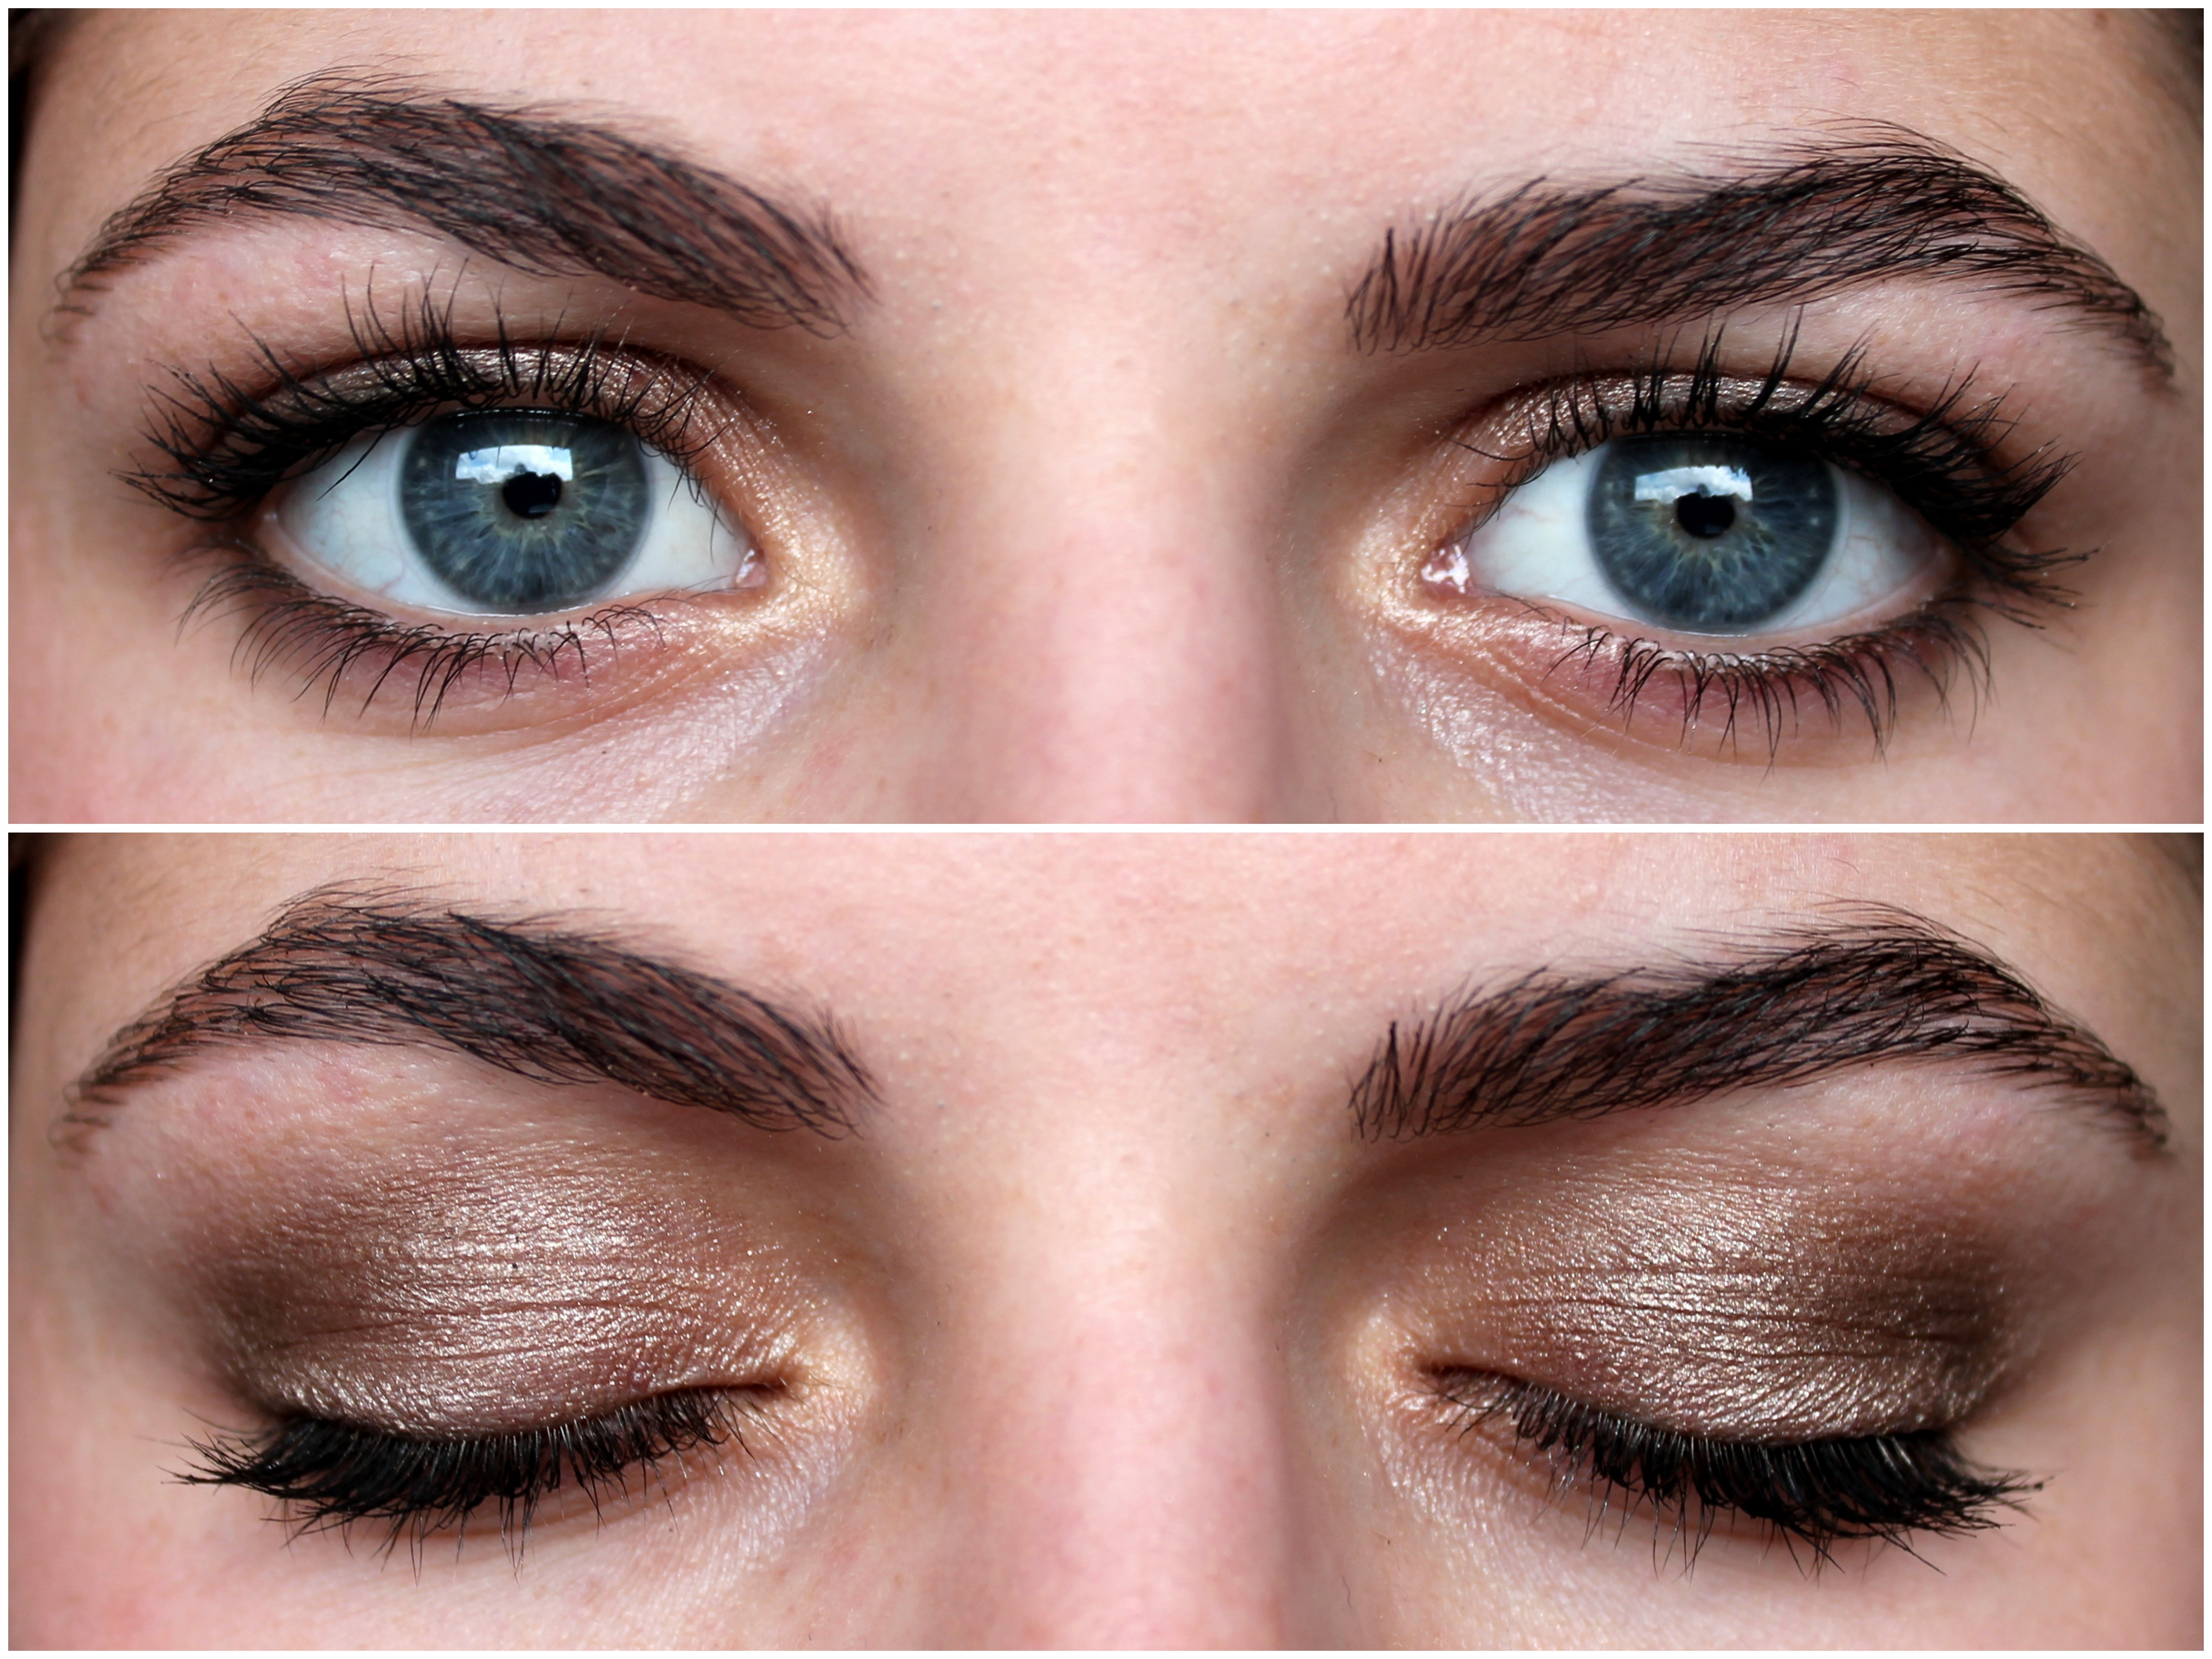 went  Today me for all  that yet look let – I  cream 'natural smokey' makeup natural show